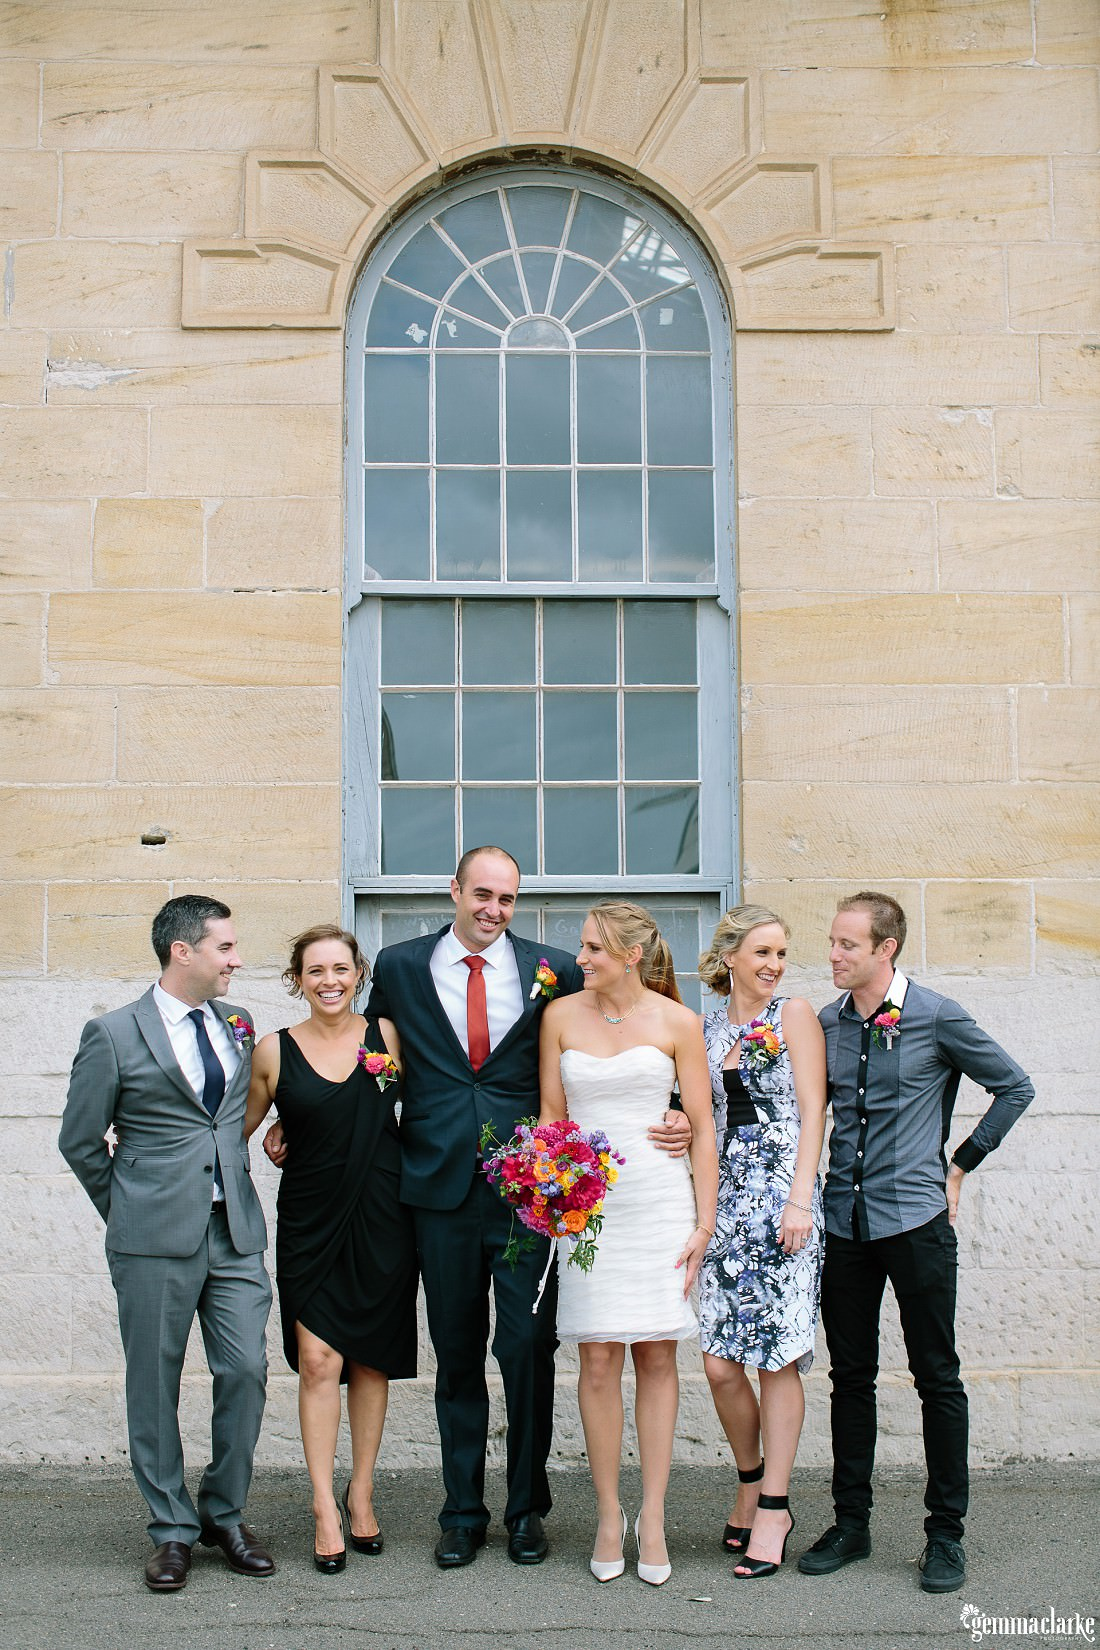 A wedding party standing together in front of a sandstone building - The Theatre Bar at the End of the Wharf Wedding